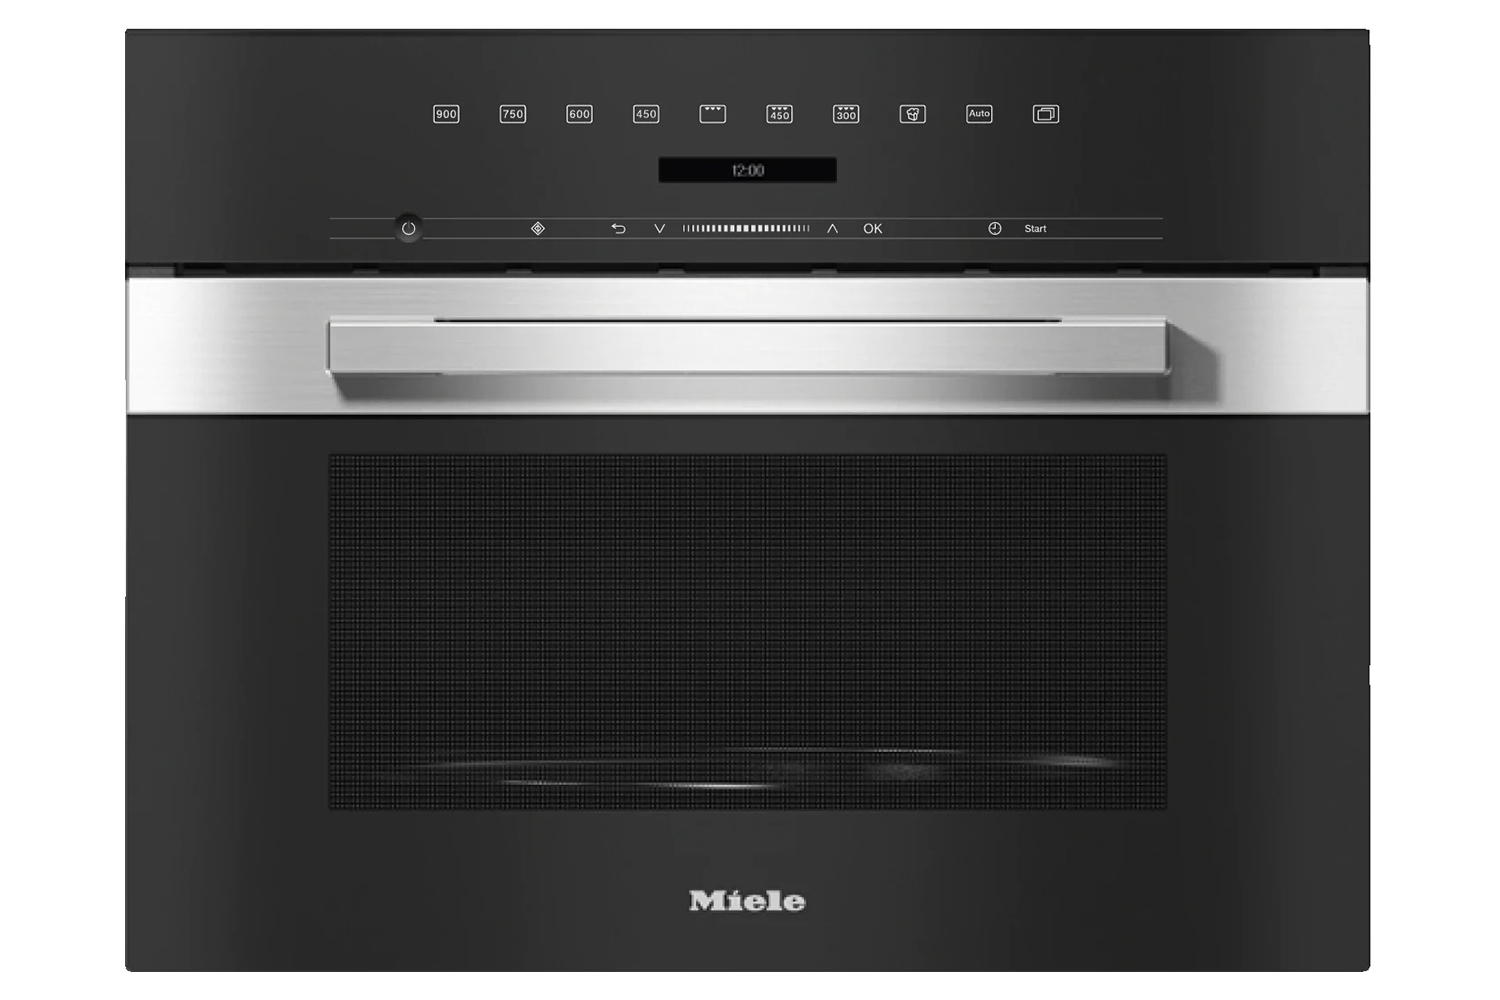 miele m 7240 tc built in microwave oven in a design that is the perfect complement with controls on the top